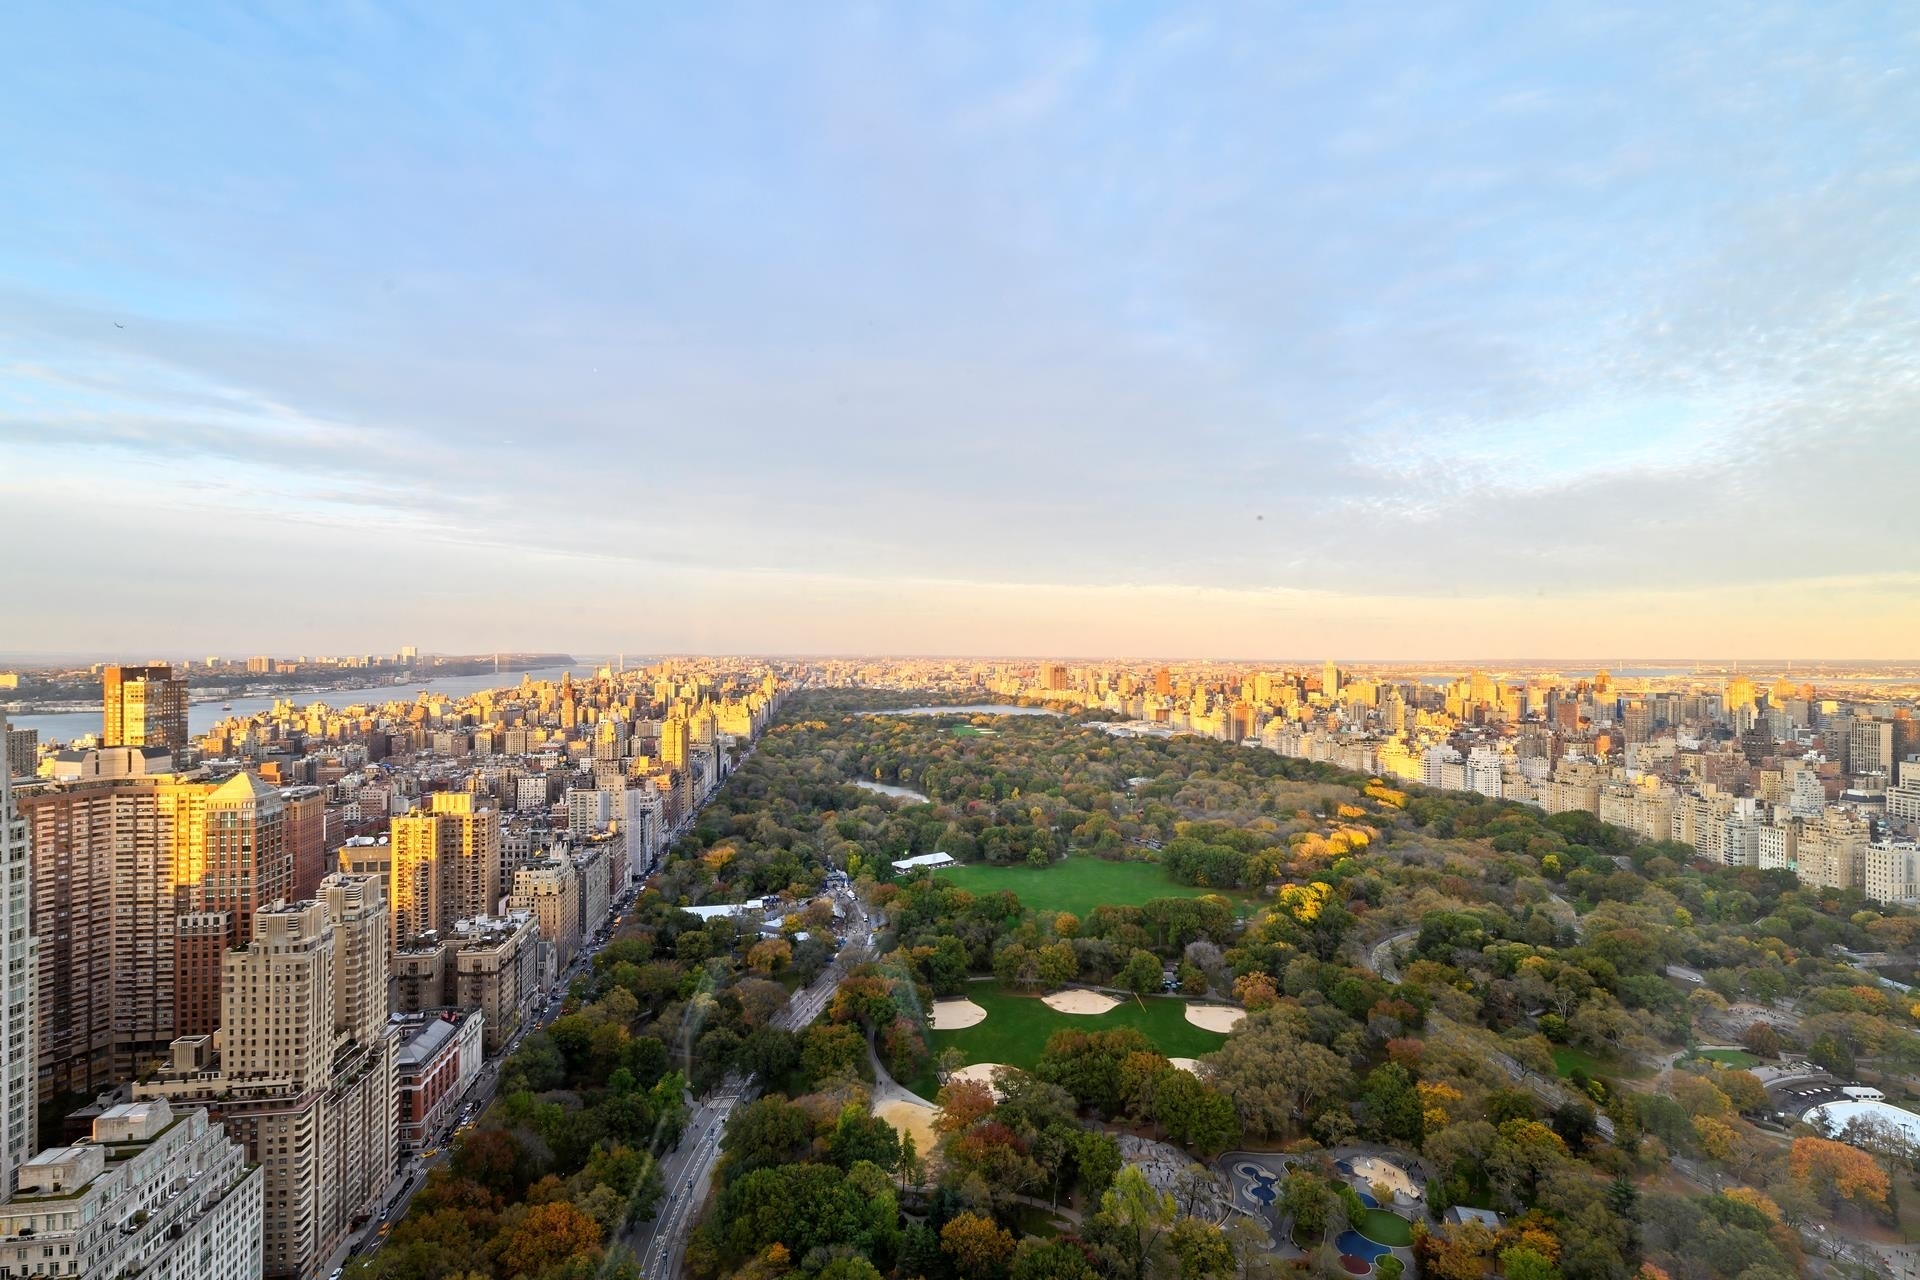 17. Condominiums for Sale at 220 CPS, 220 CENTRAL PARK S, 54/55A Central Park South, New York, NY 10019